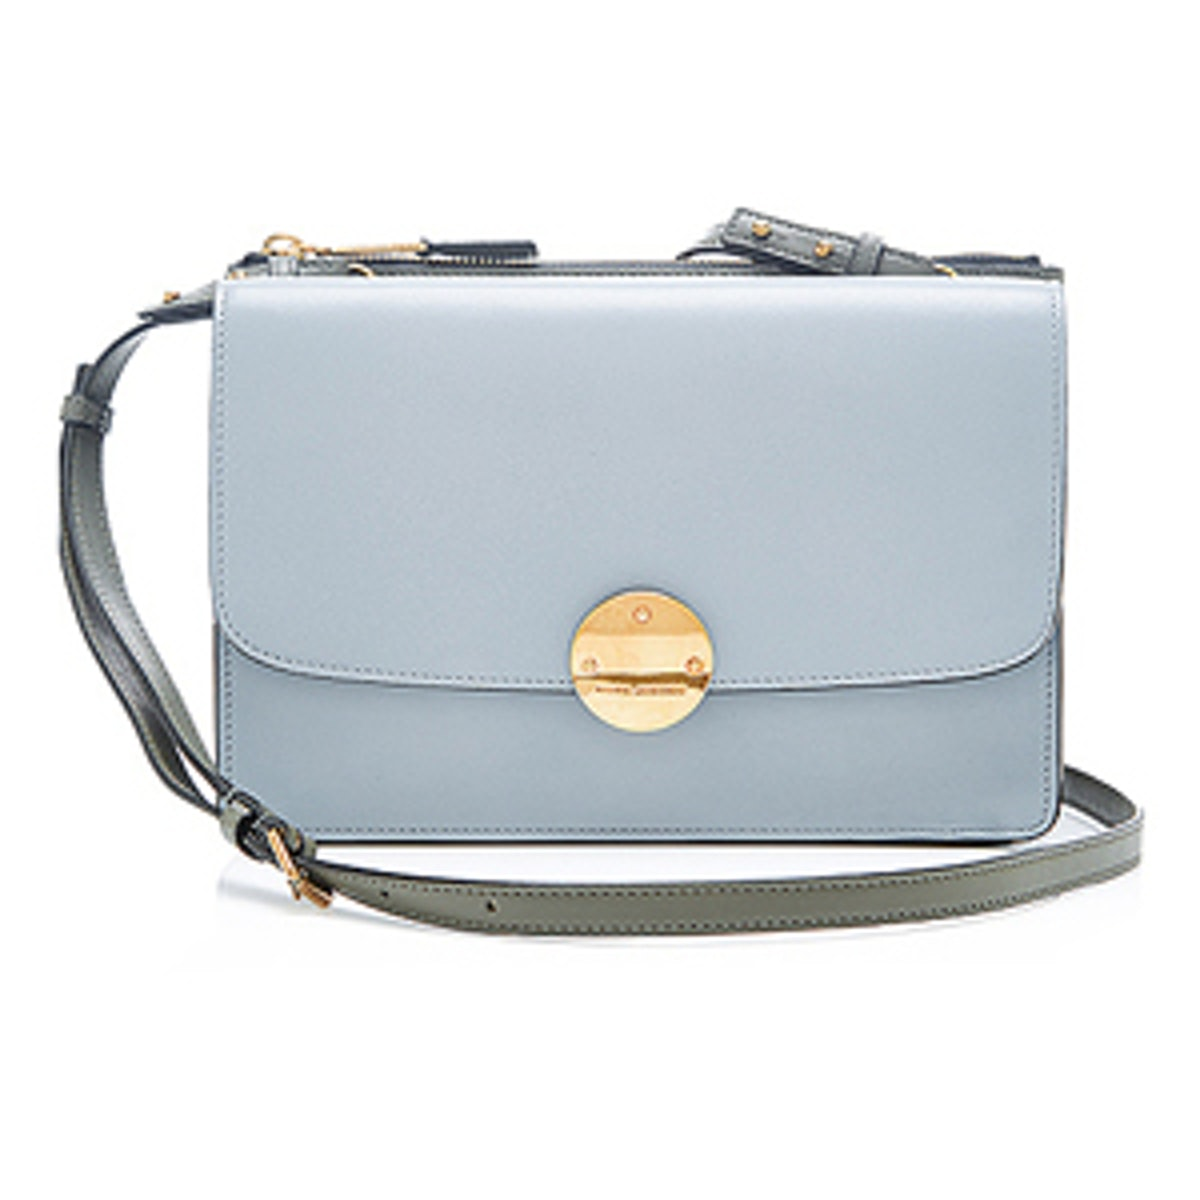 Party Girl Bag in Ice Blue